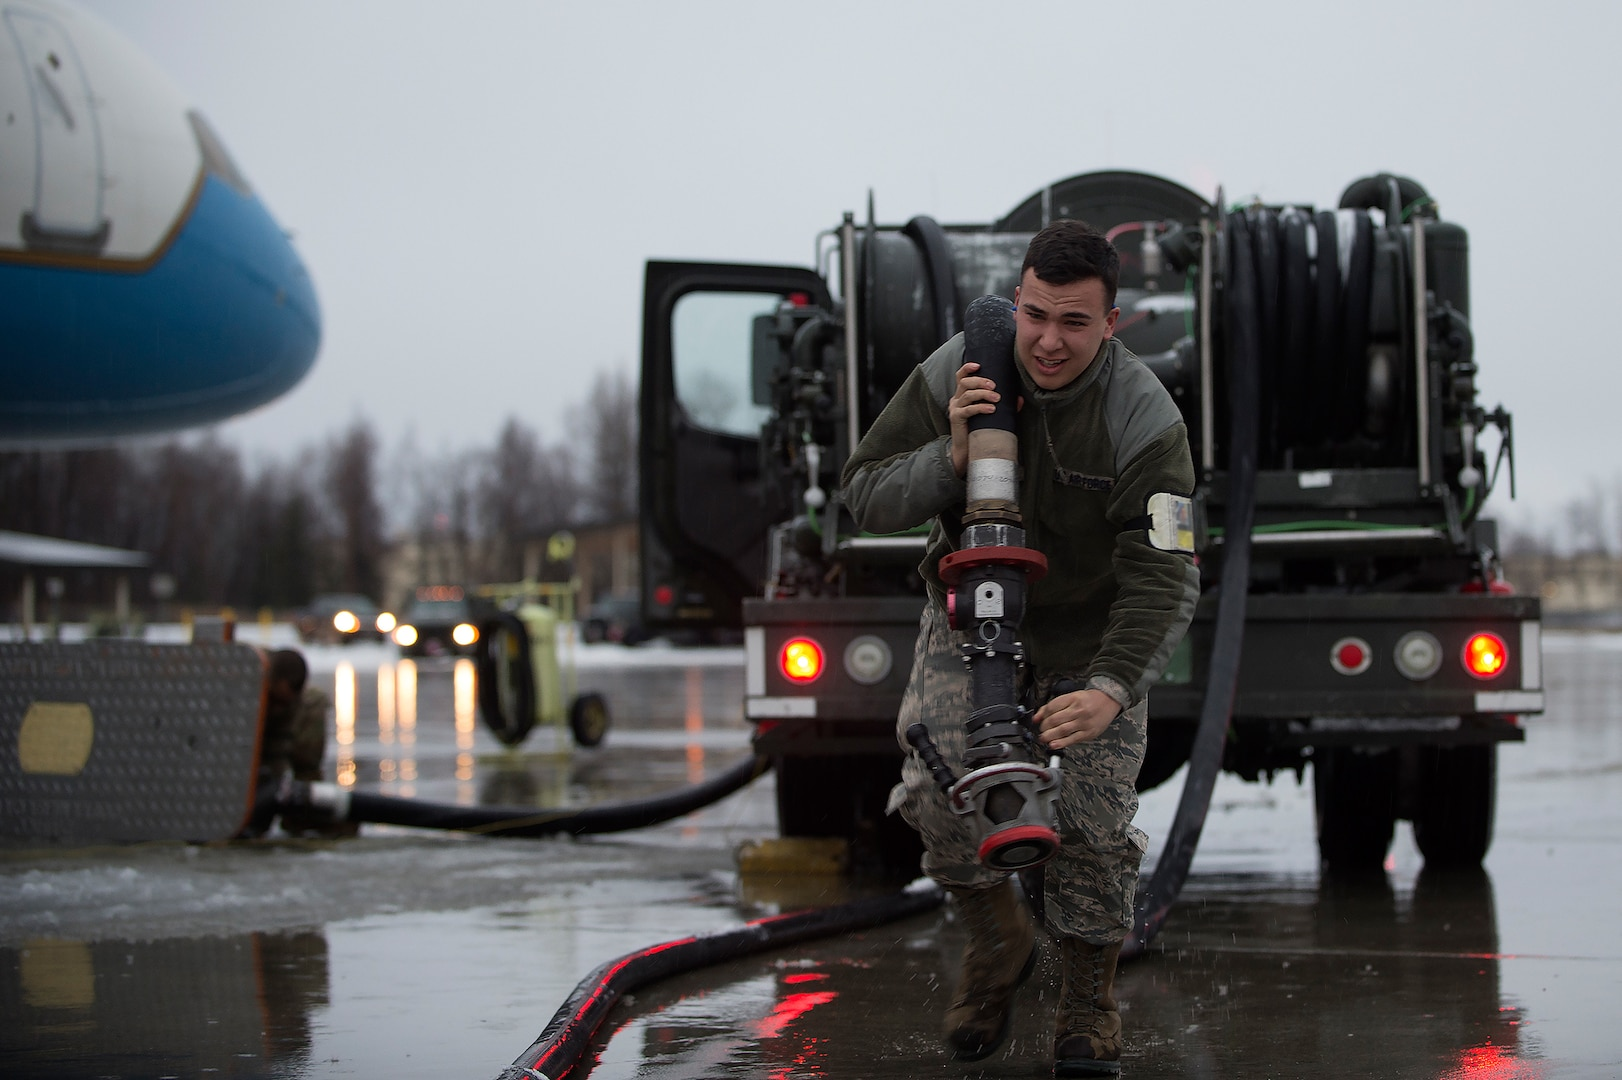 Petroleum, Oils and Lubricants Airmen Keep Northern Edge Fueled